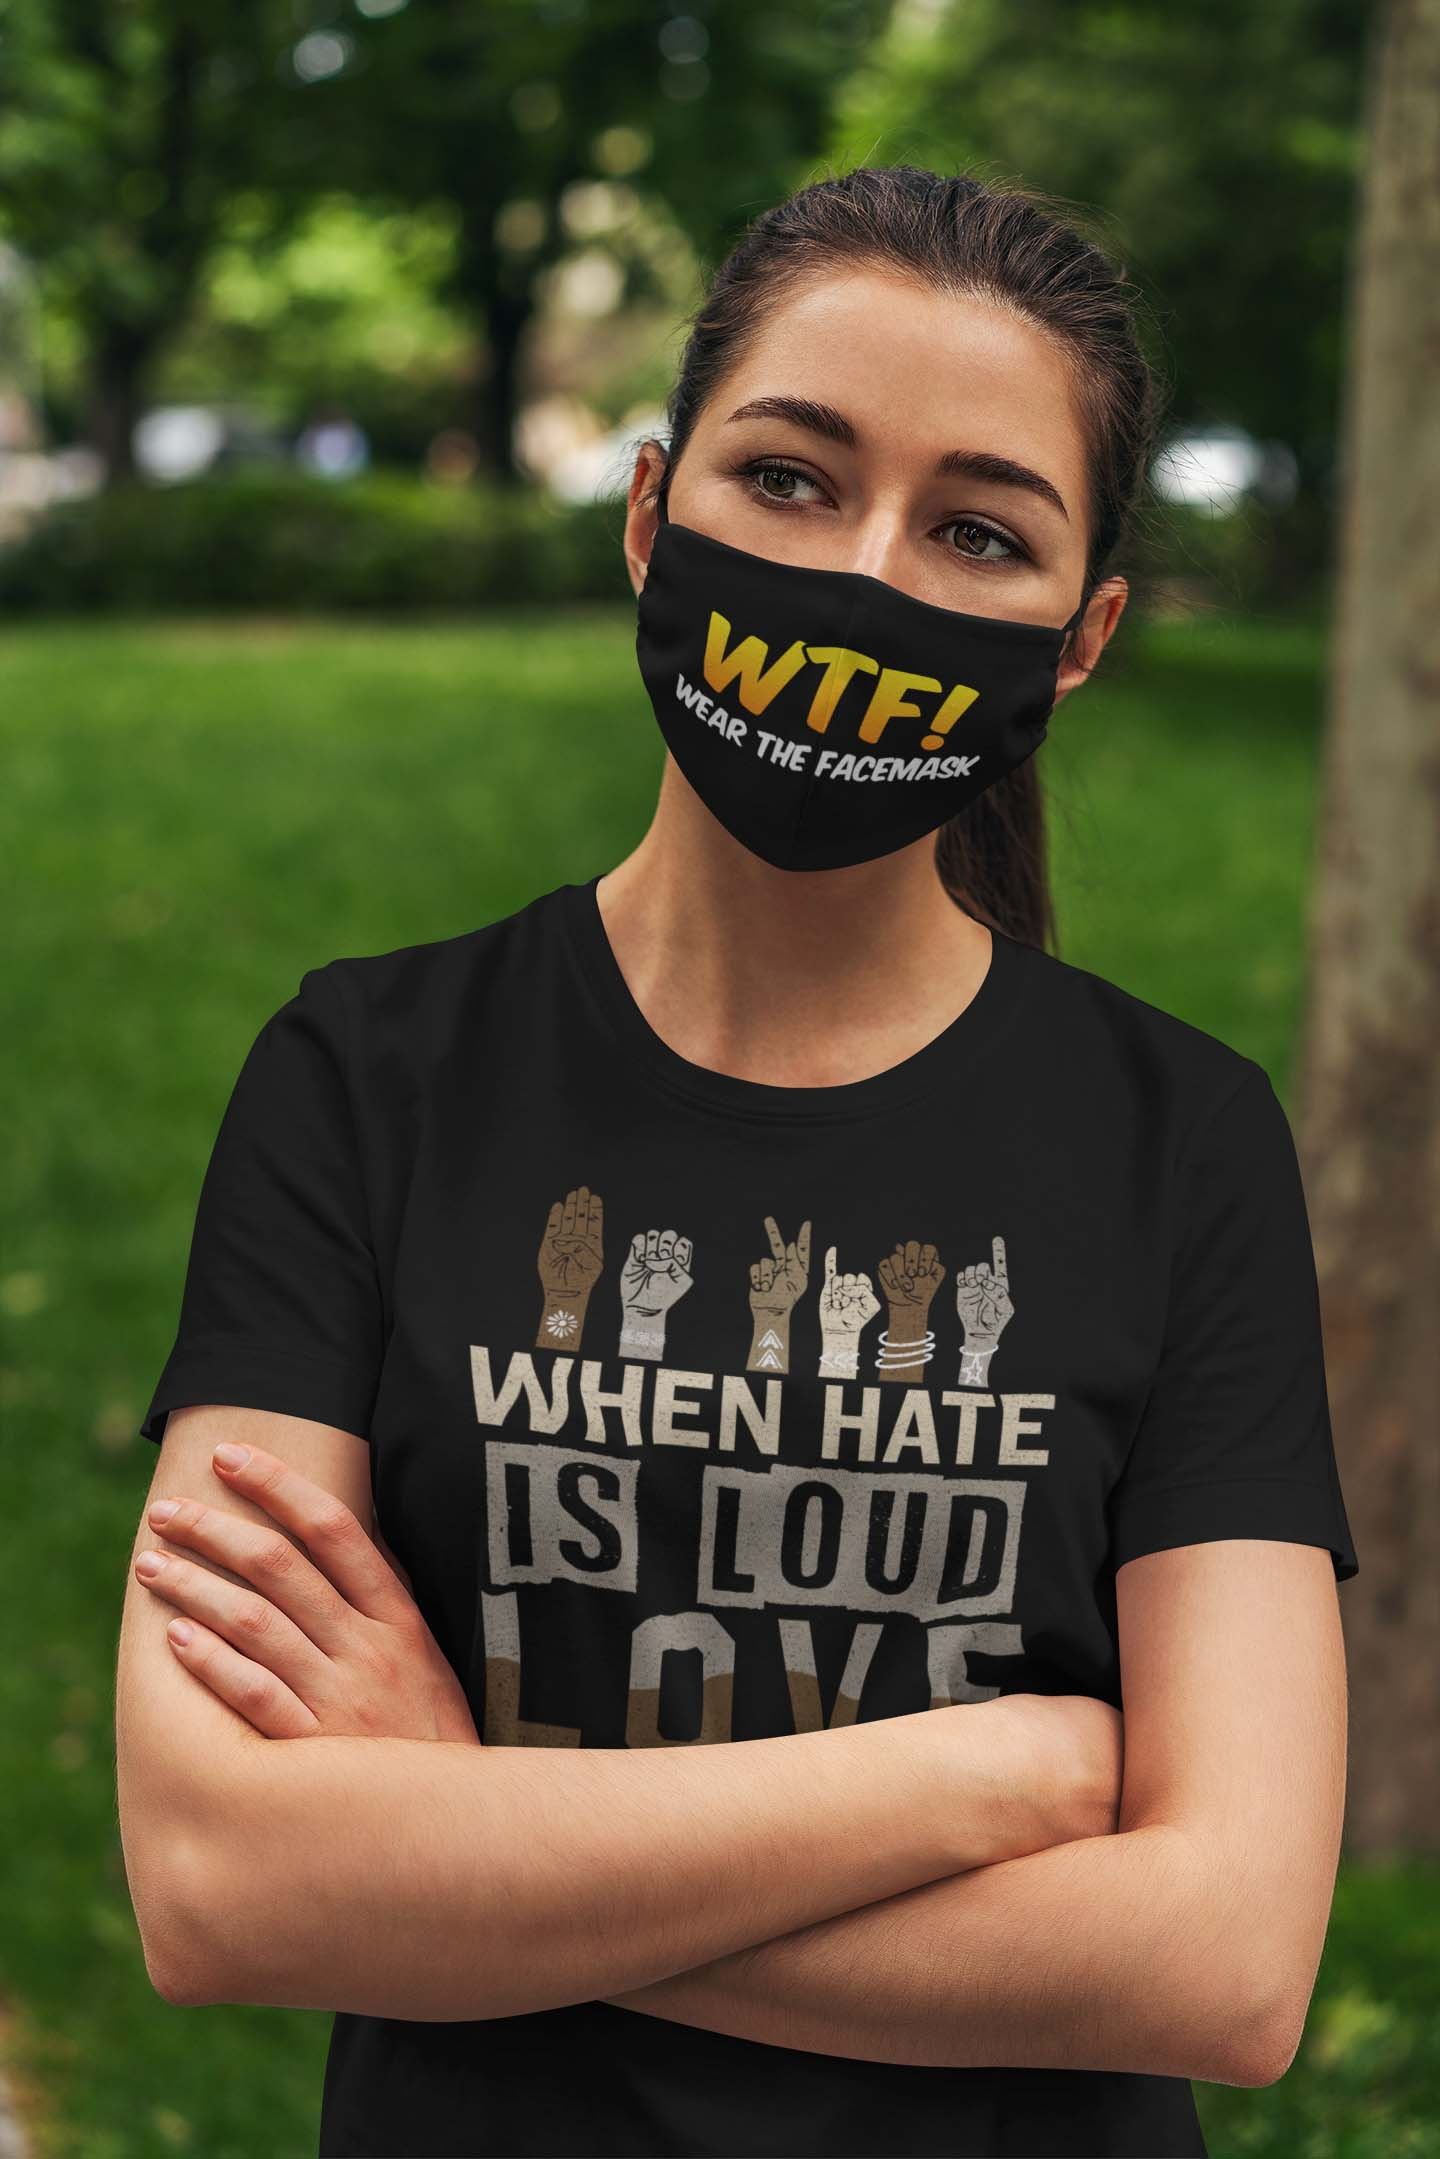 WTF wear the face mask anti pollution face mask 1